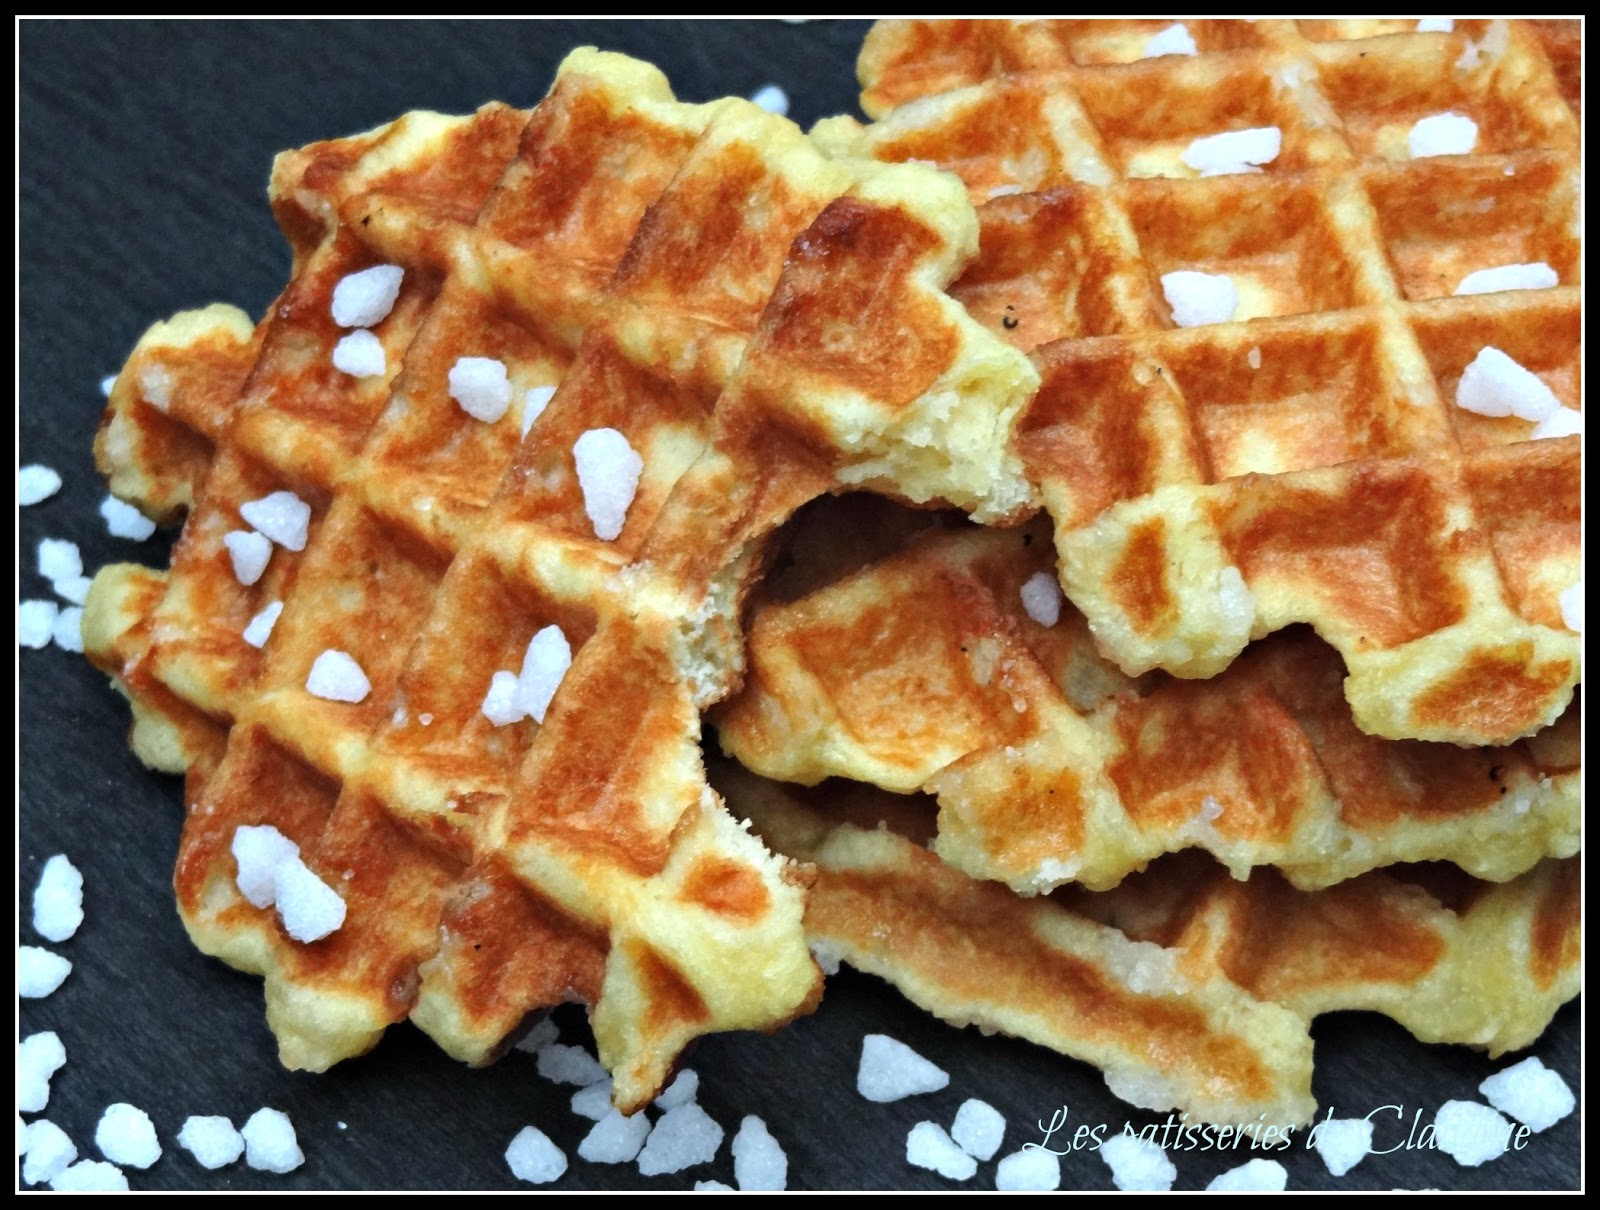 Cuisine Bernard Gaufres List Of Synonyms And Antonyms Of The Word Gaufre Liegeoise